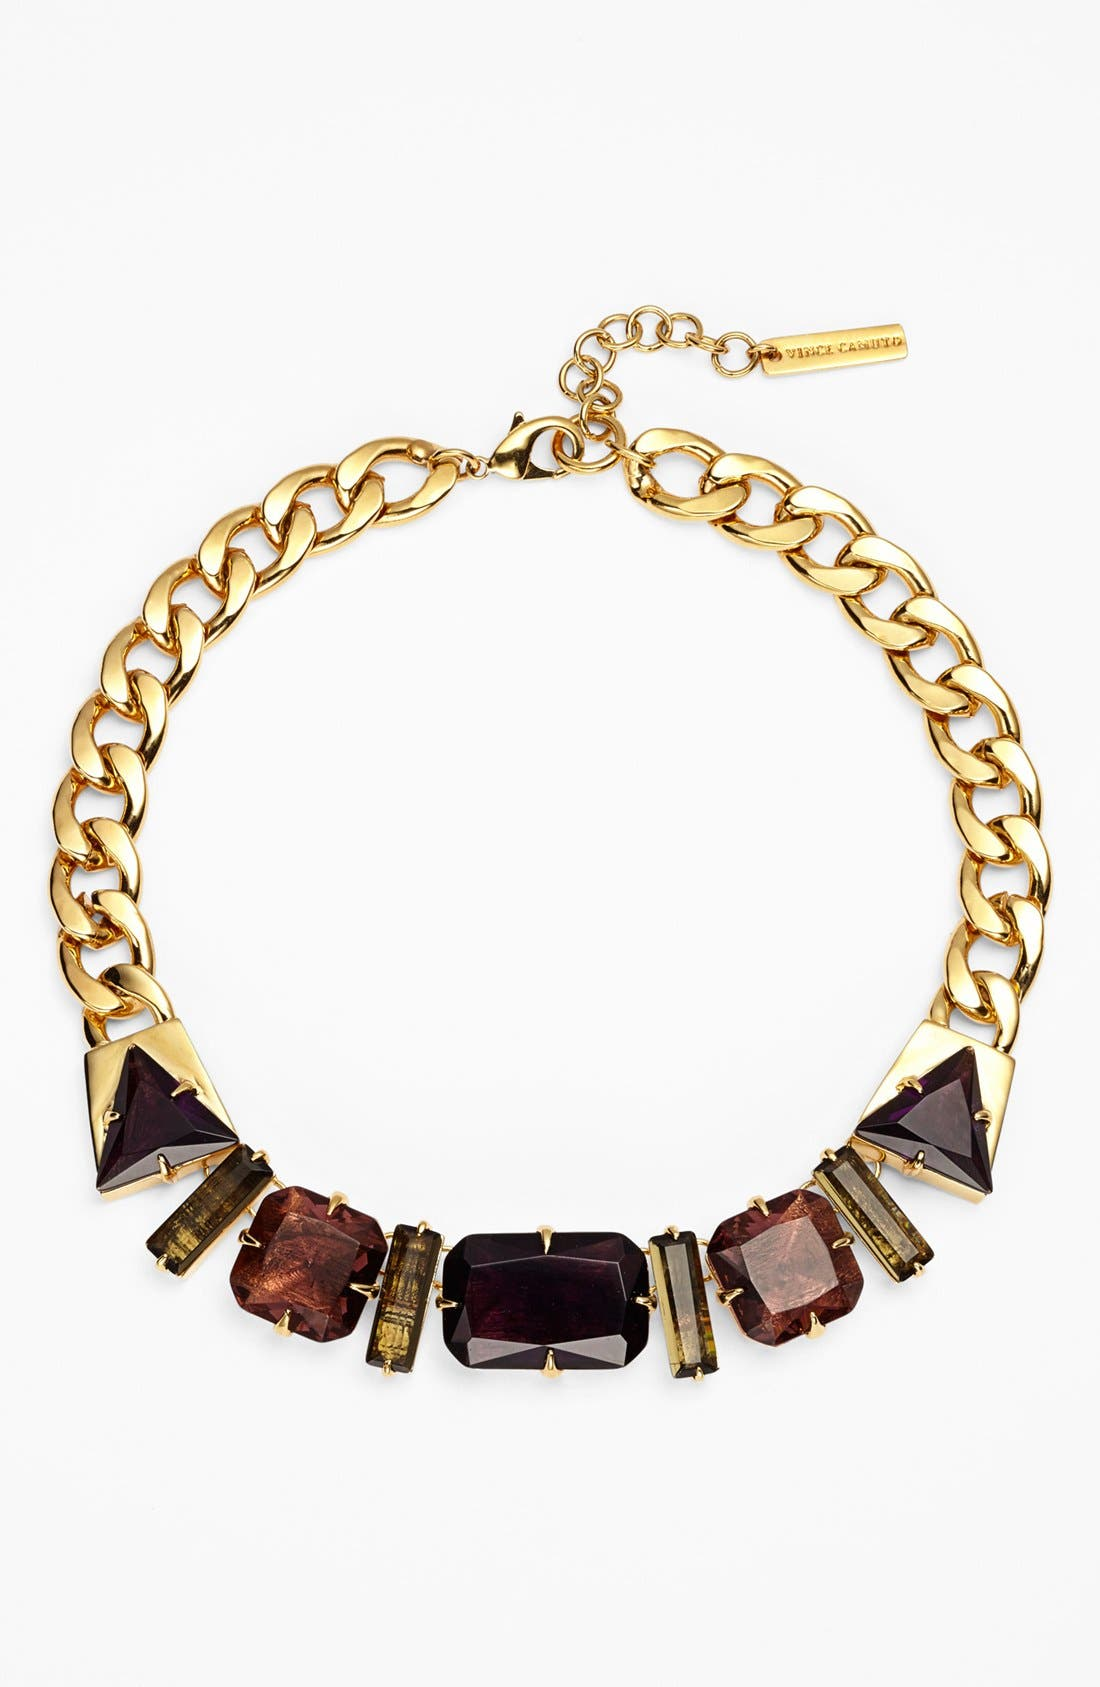 Main Image - Vince Camuto 'Jewel Purpose' Stone Link Collar Necklace